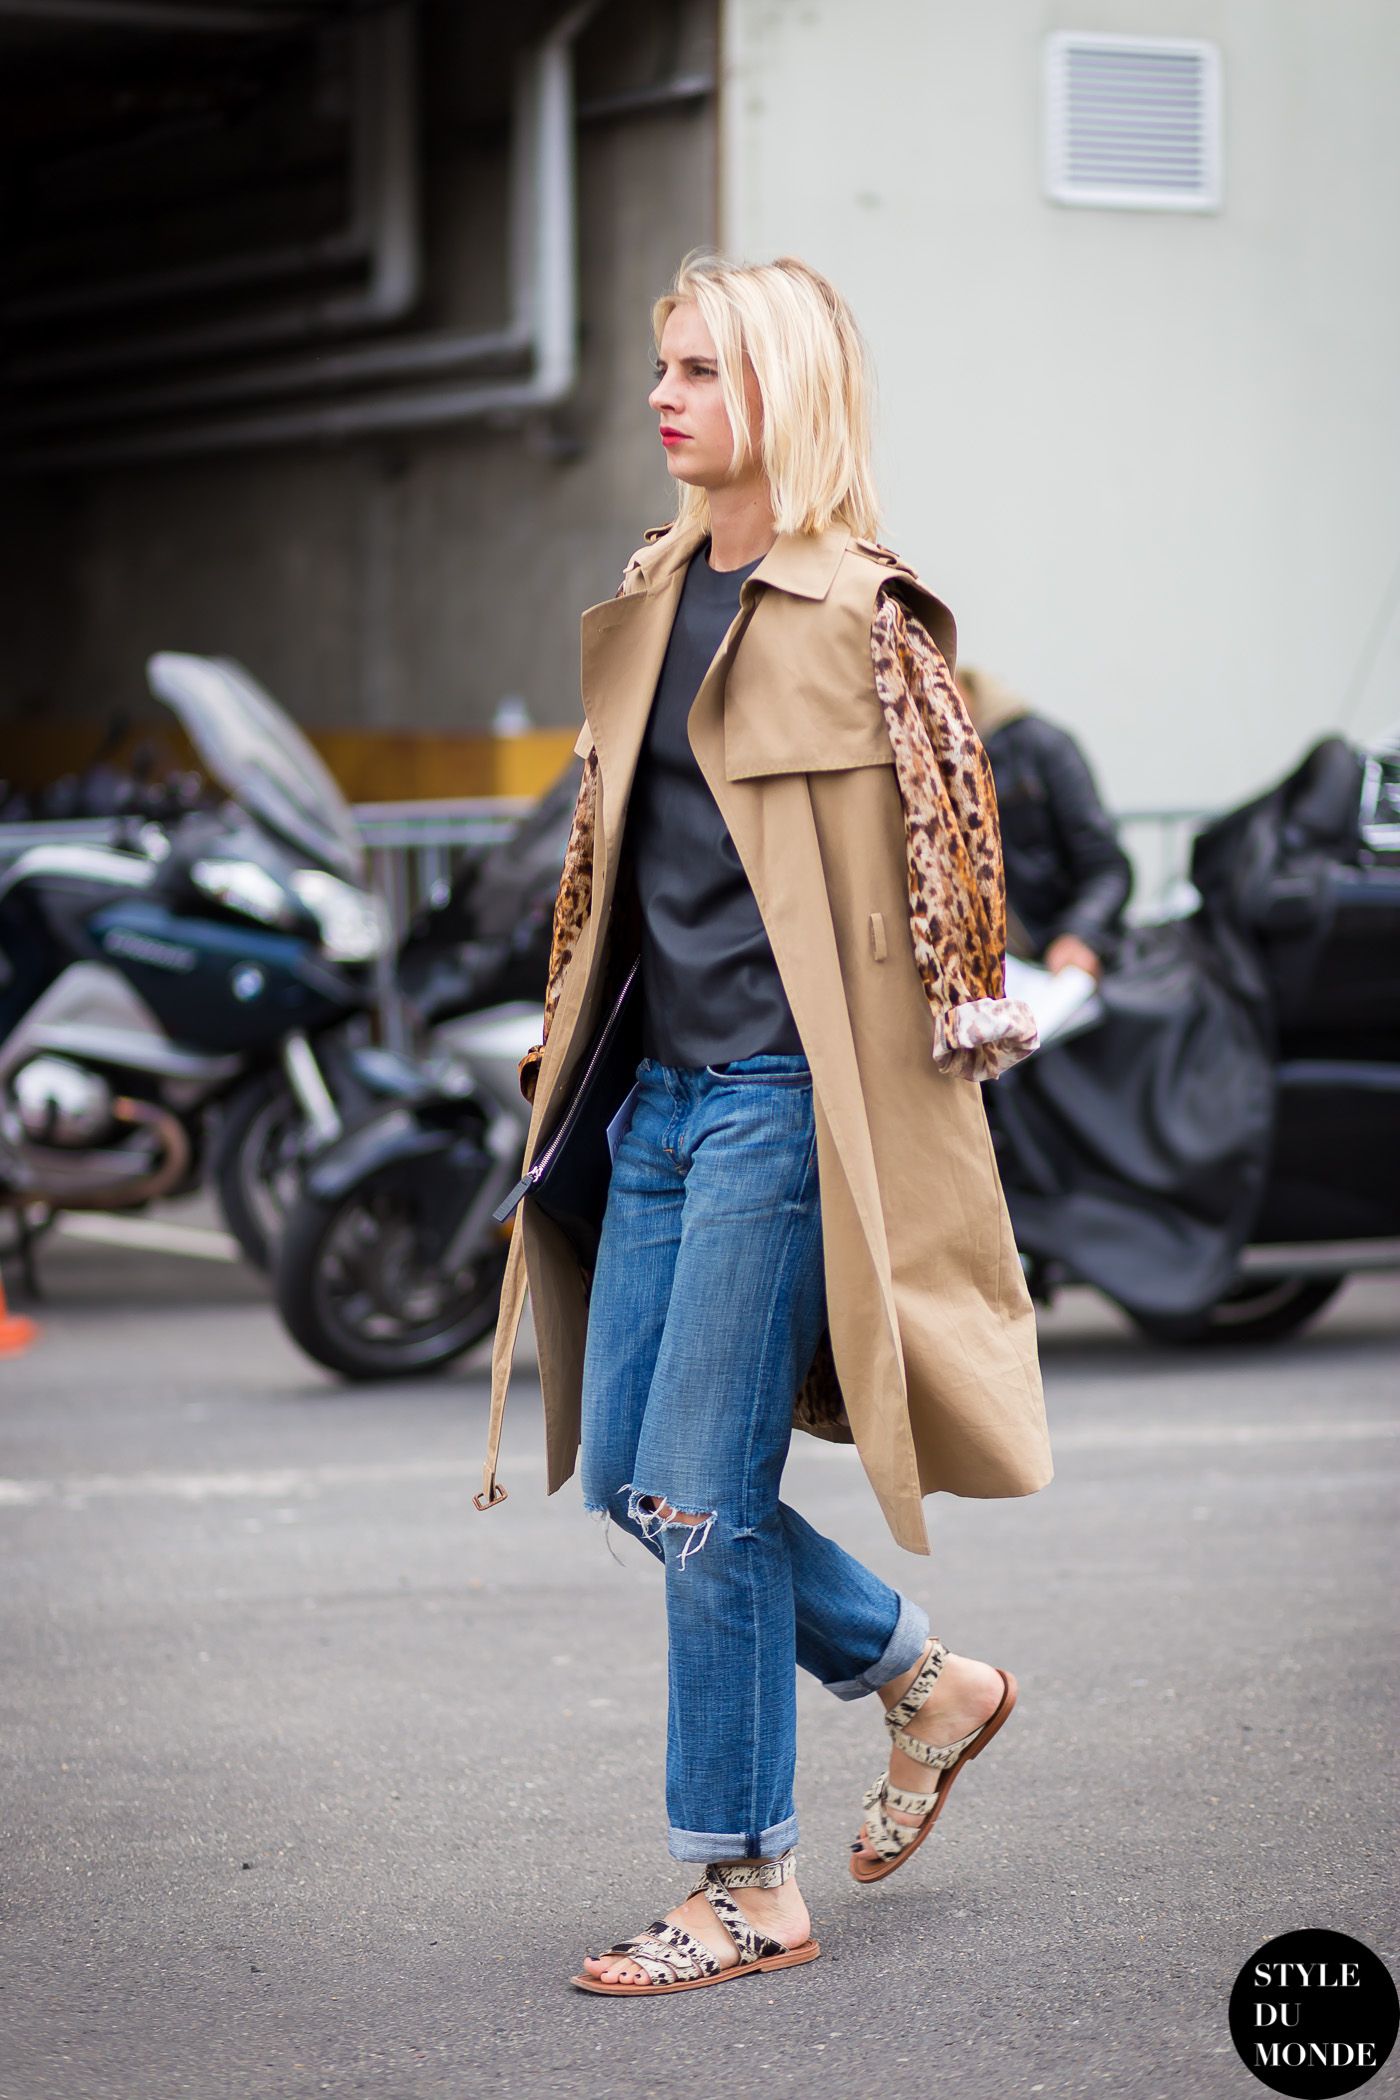 Before Givenchy Street Style Street Fashion Streetsnaps by STYLEDUMONDE Street Style Fashion Blog